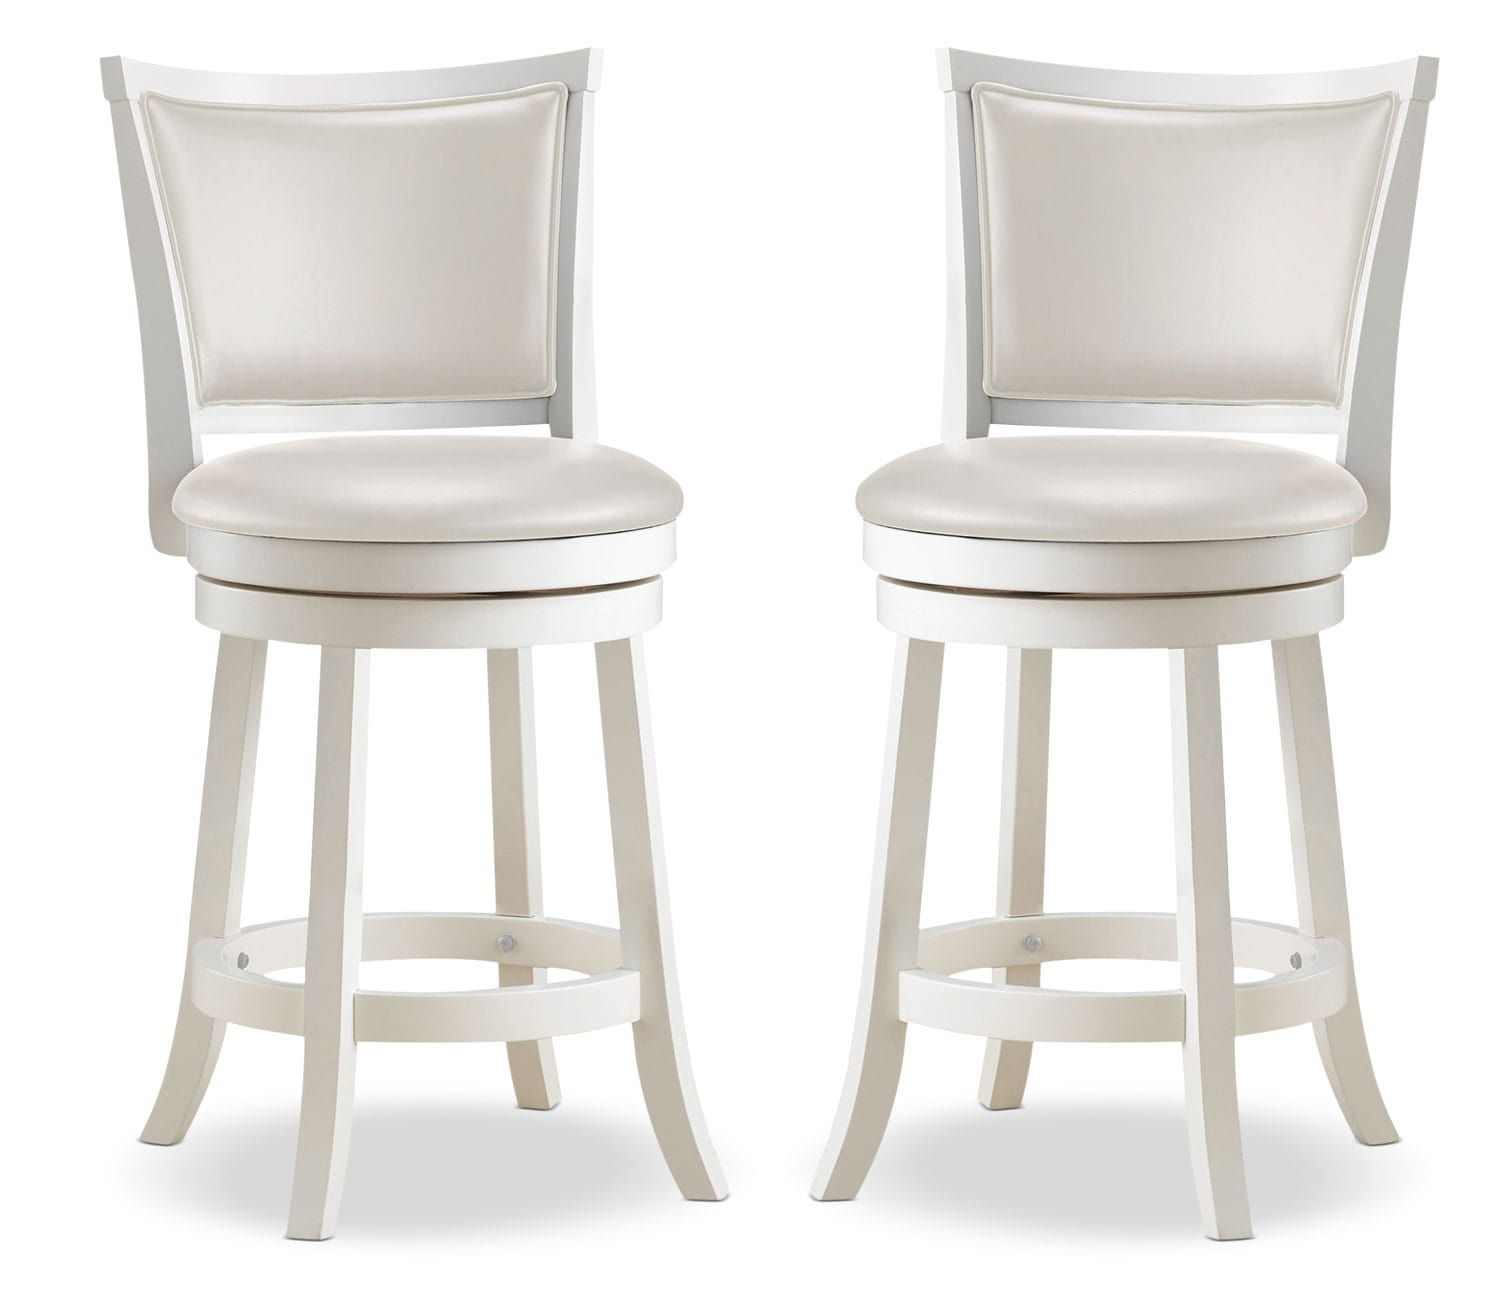 Woodgrove Counter Height Dining Stool Set of 2 The Brick : 418622 from www.thebrick.com size 1500 x 1289 jpeg 105kB